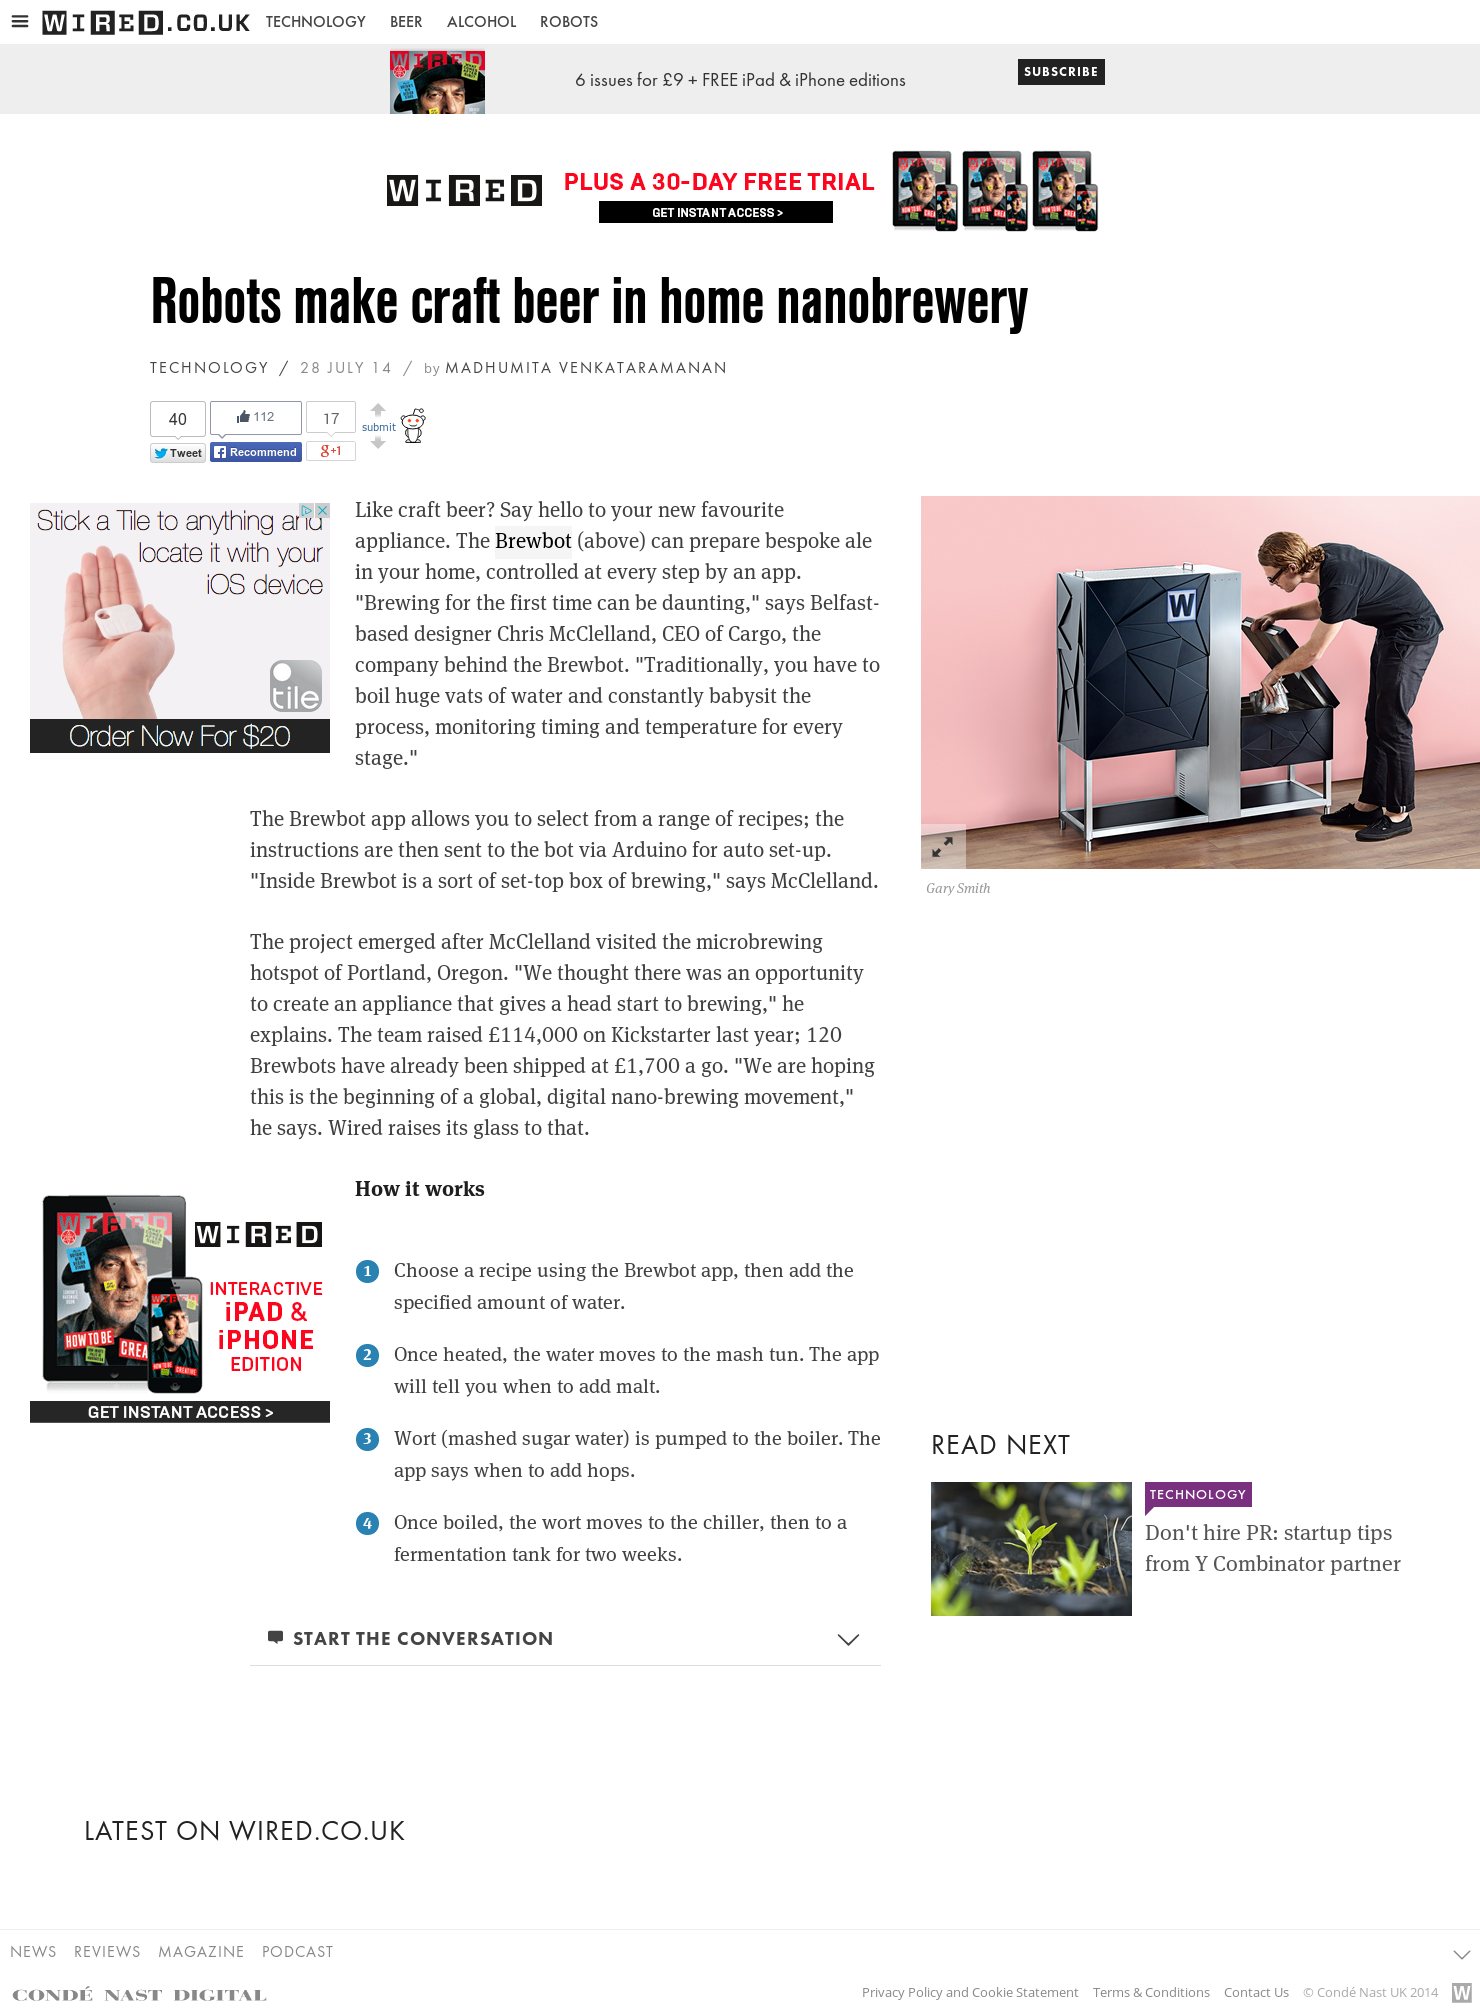 Robots make craft beer in home nanobrewery - wired.co.uk